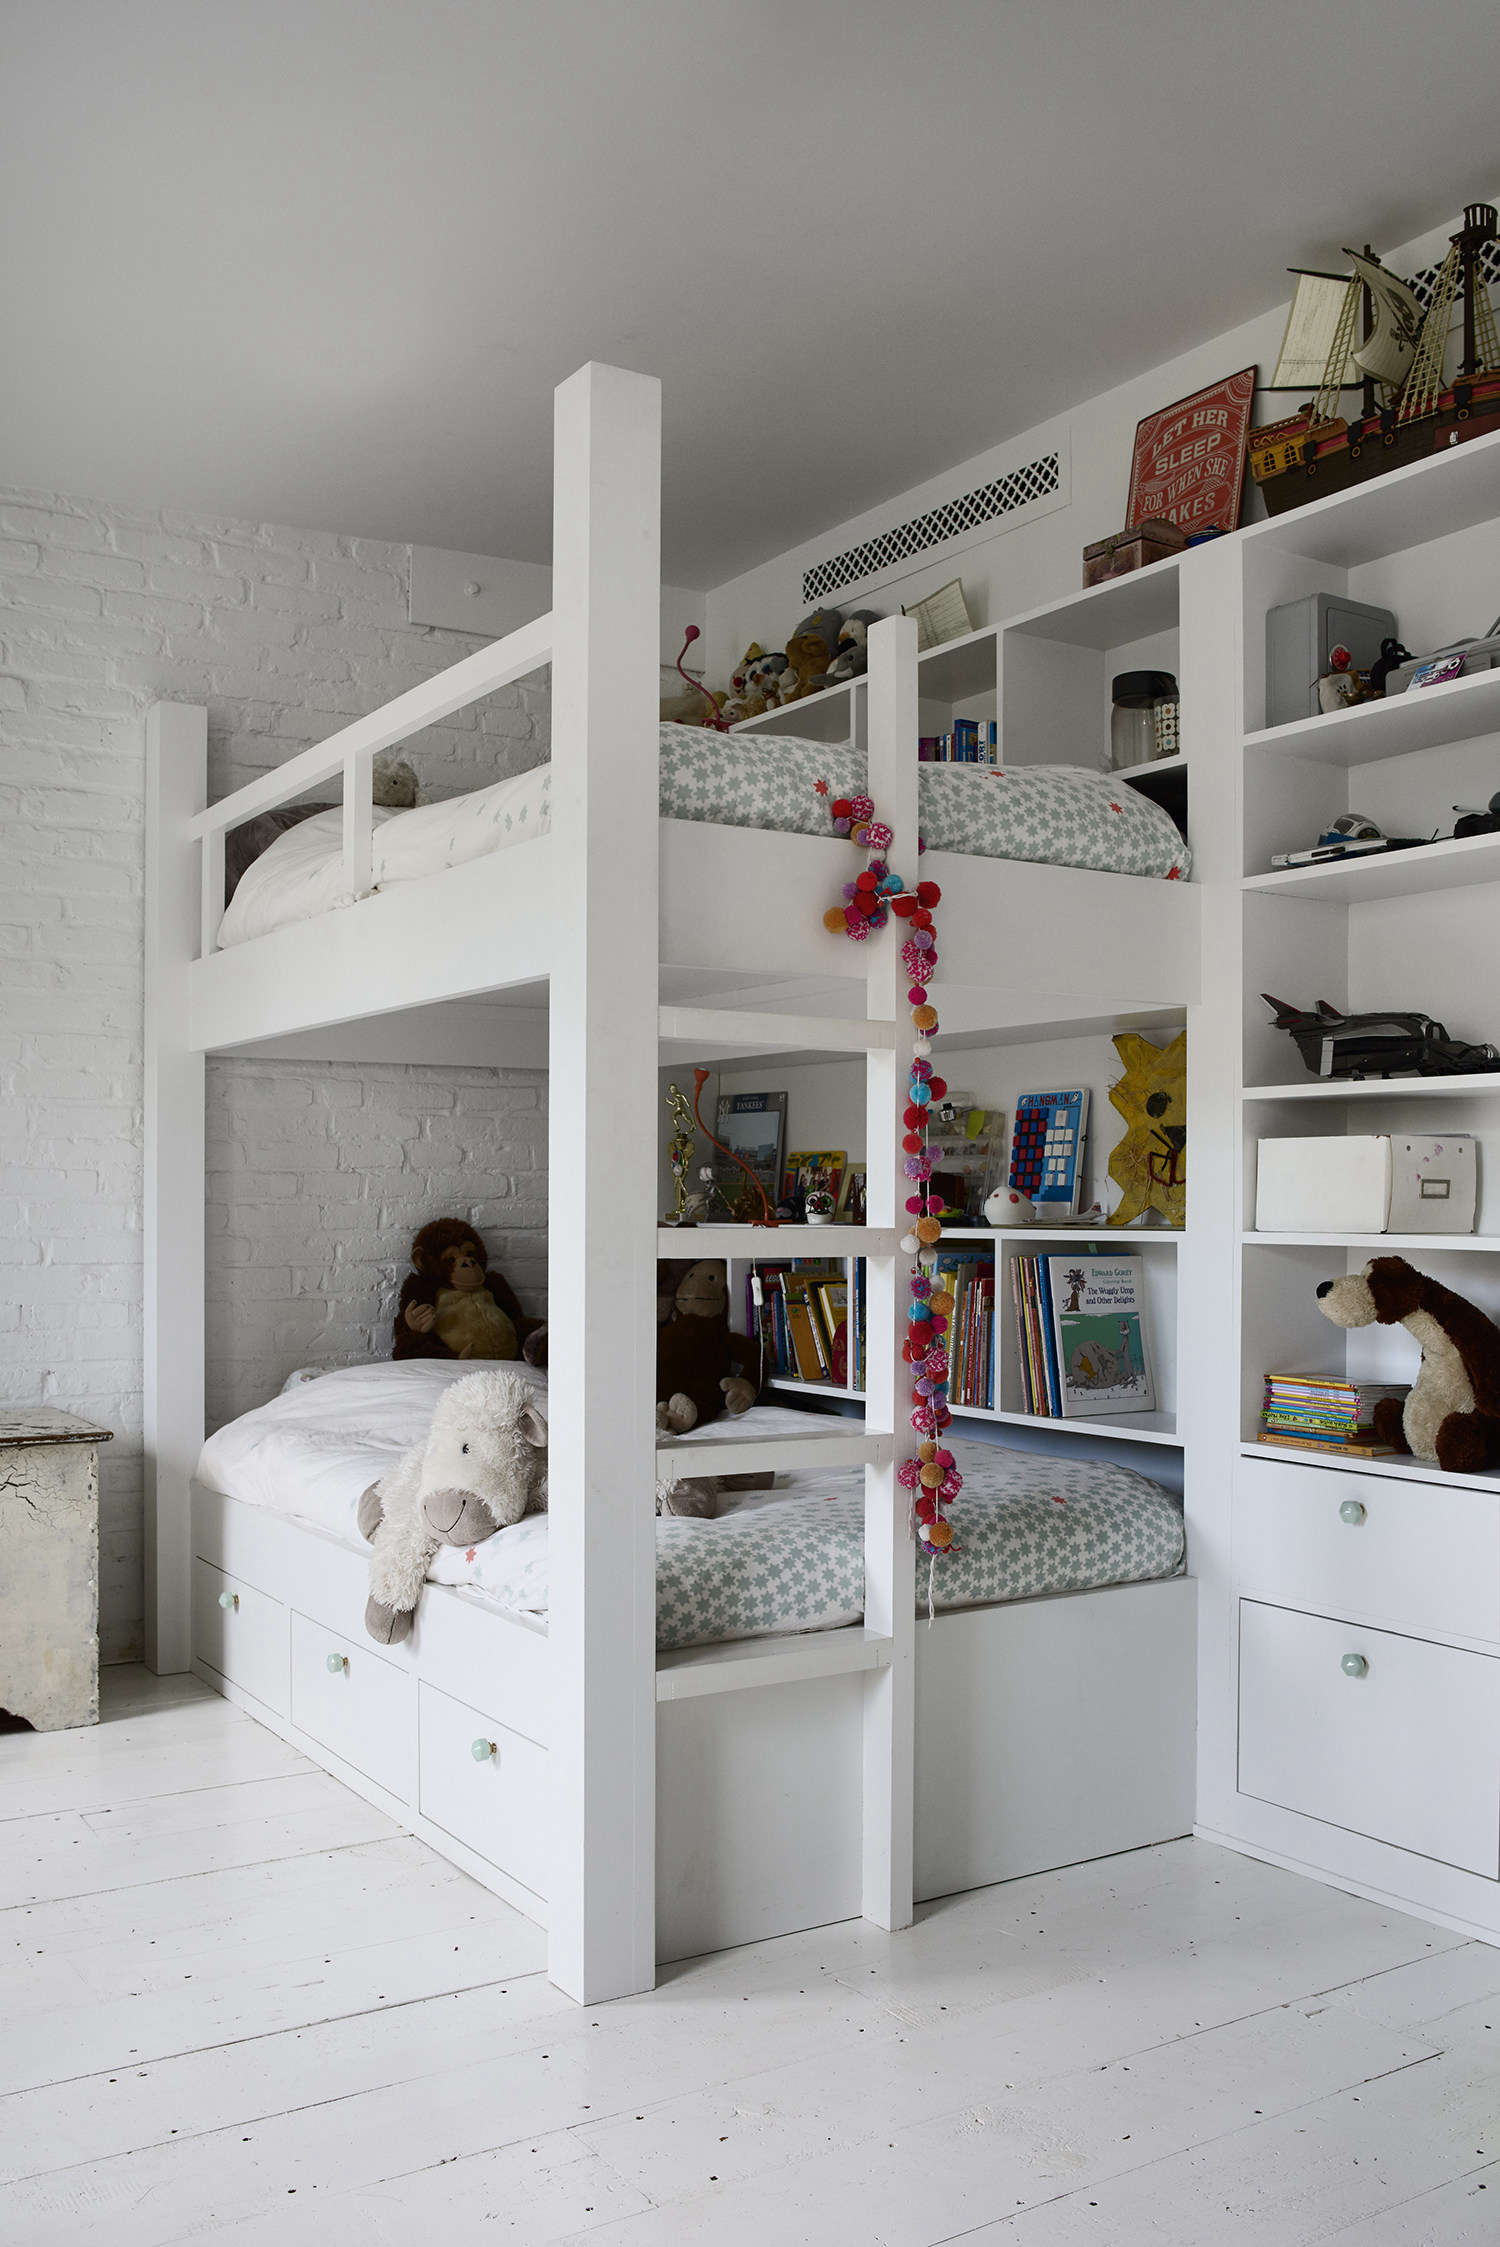 Archive Dive Our 13 Favorite Built In Bunk Beds The Organized Home